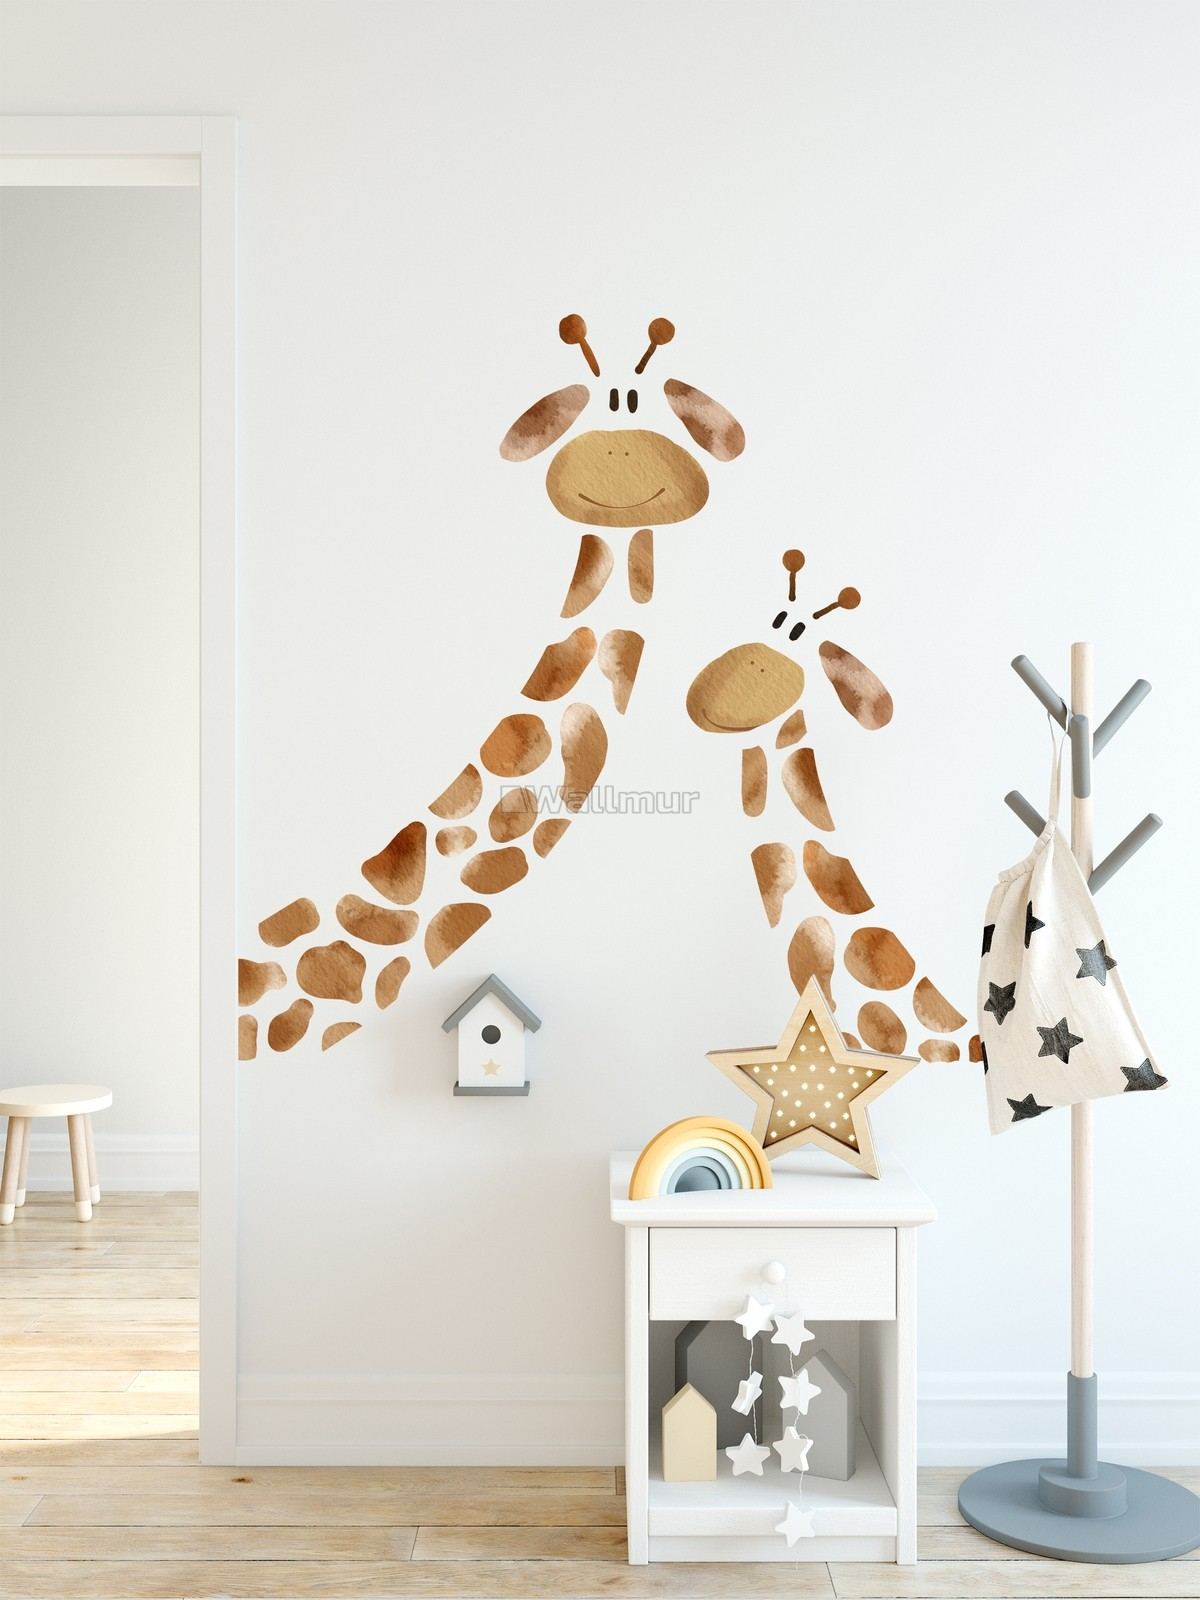 Giraffe Wall Decal Sticker